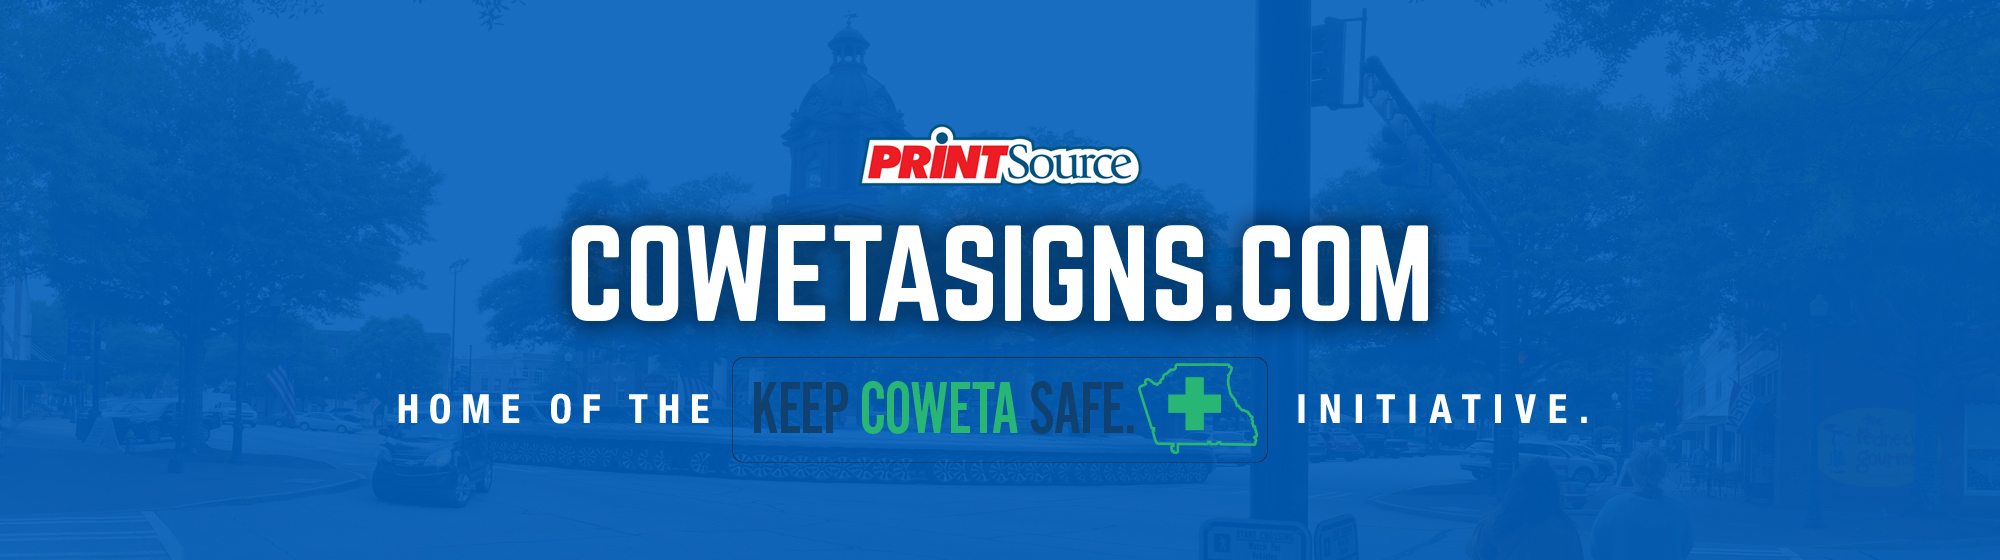 Visit our new sign site to get your COVID-19 Safety signs!